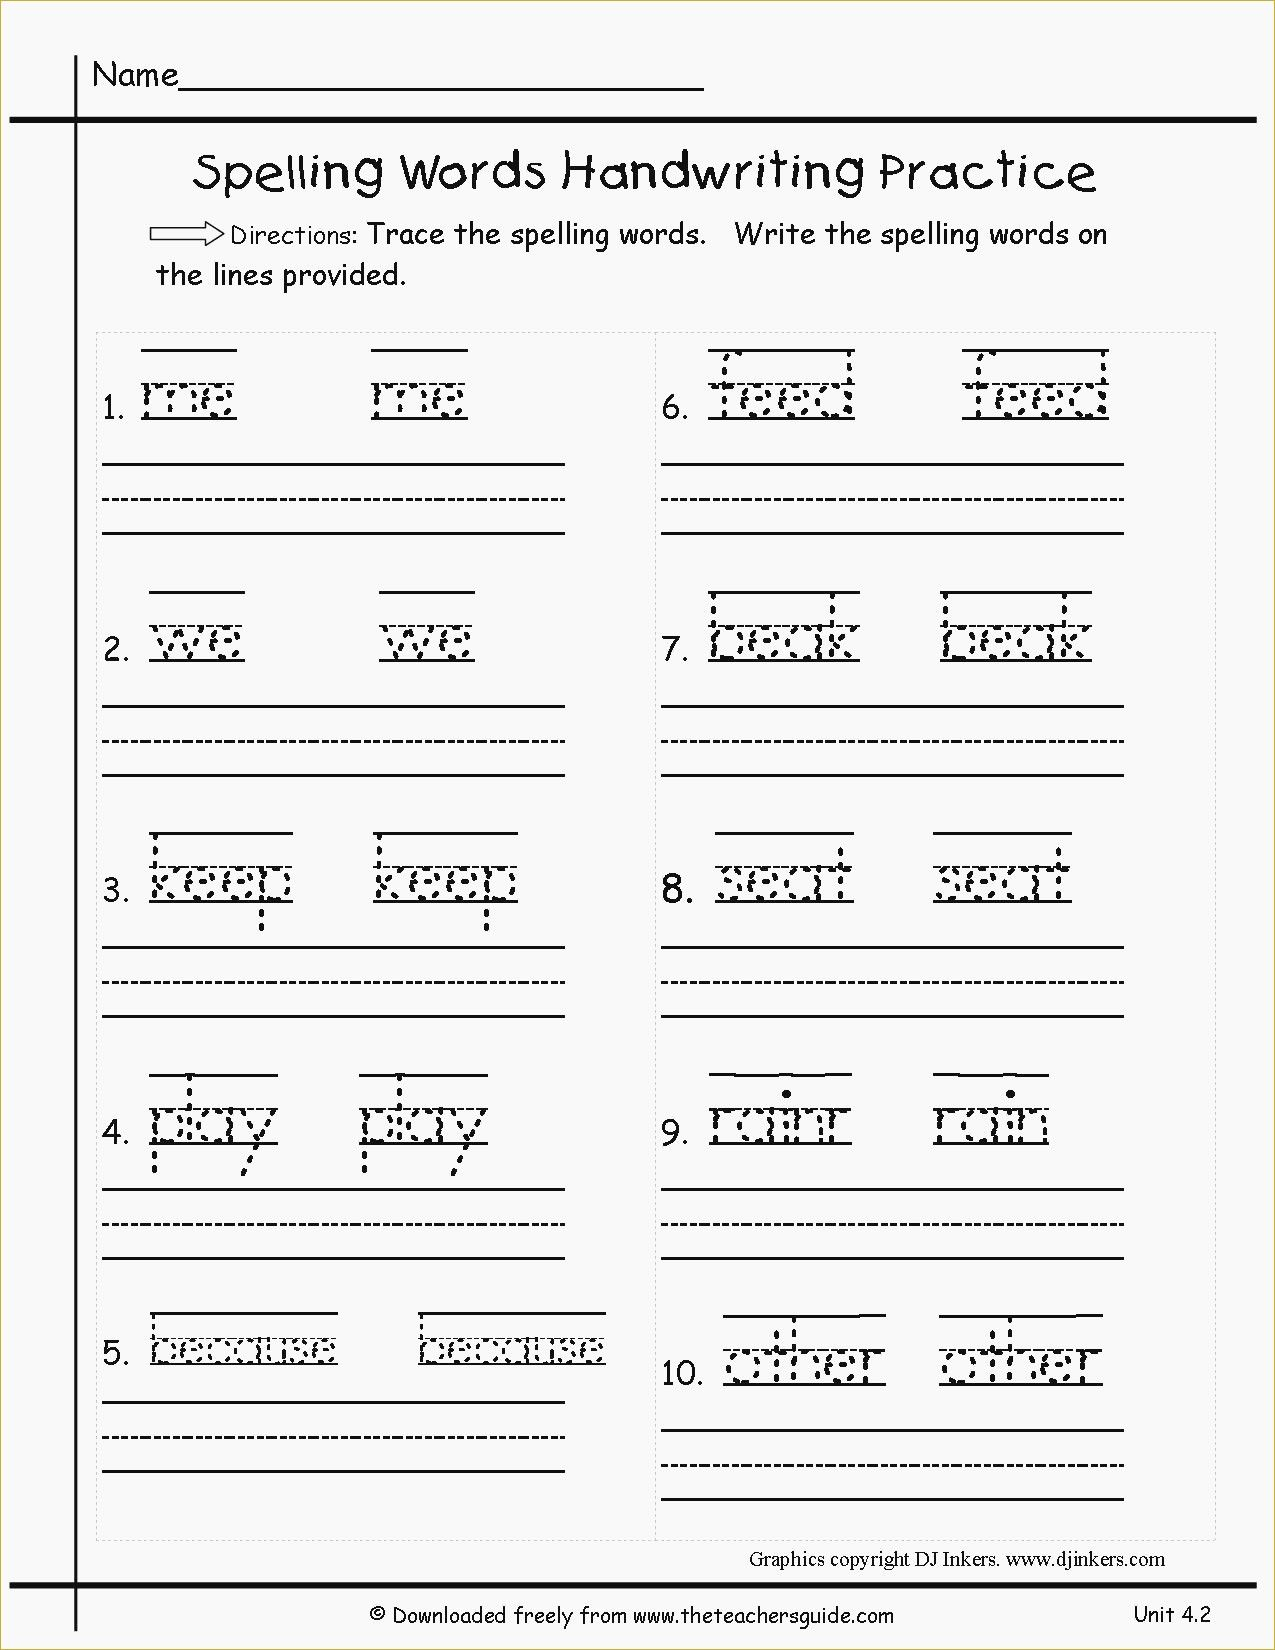 Free Printable Spelling Practice Worksheets